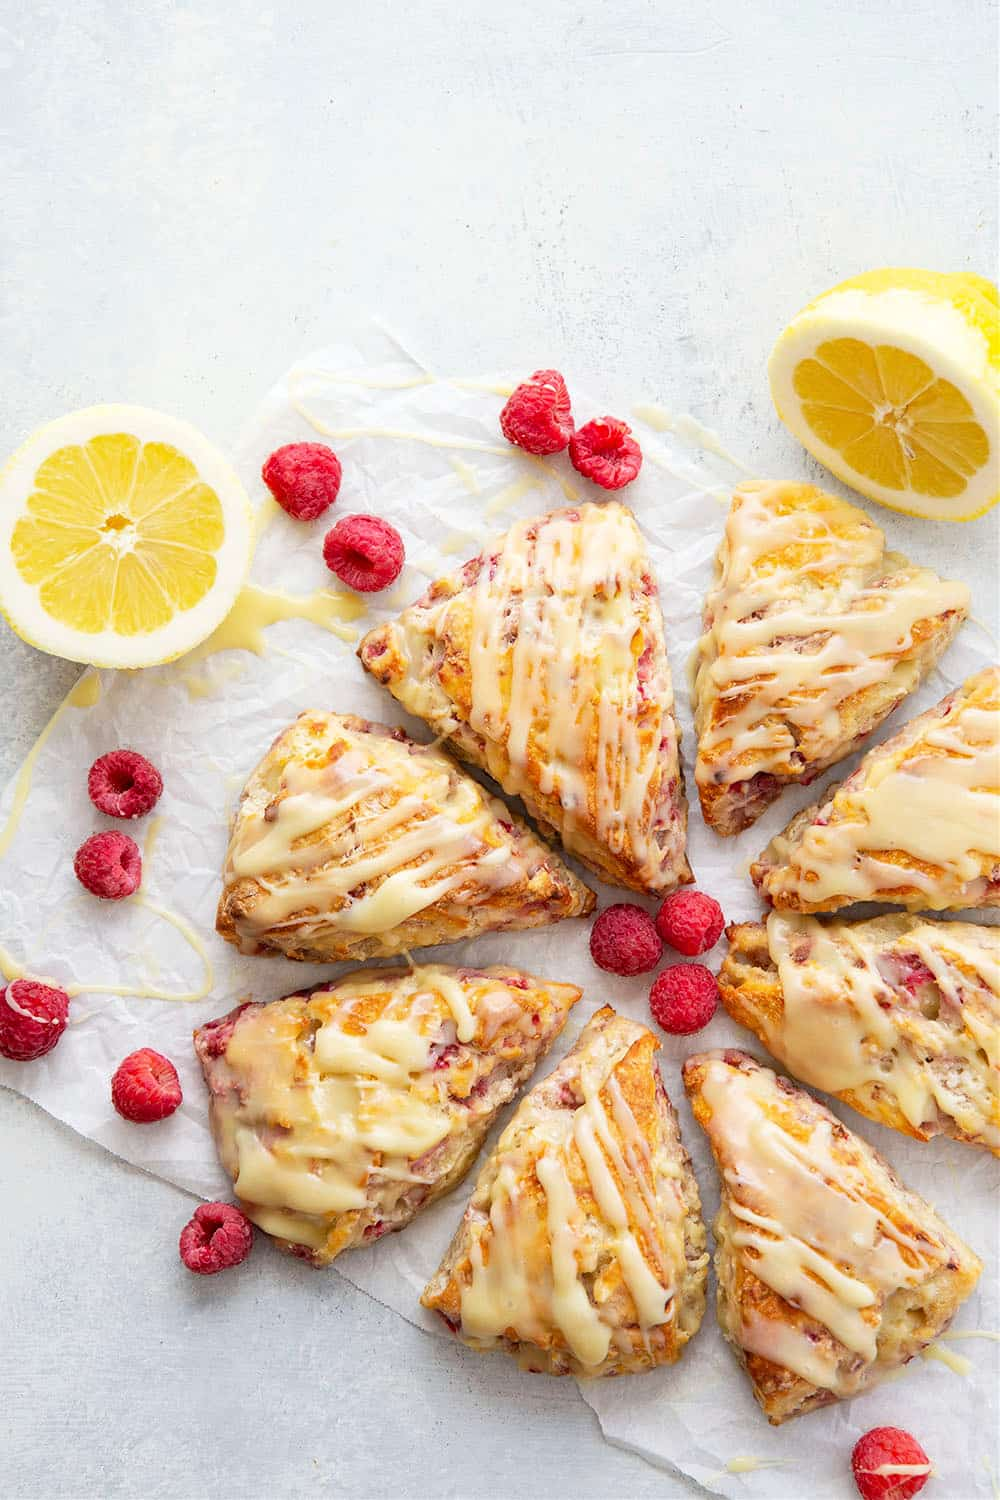 Perfectly flaky and loaded with juicy raspberries and tangy lemon flavor, these lemon raspberry scones are glazed in a rich white chocolate glaze and a beautiful addition to any brunch!